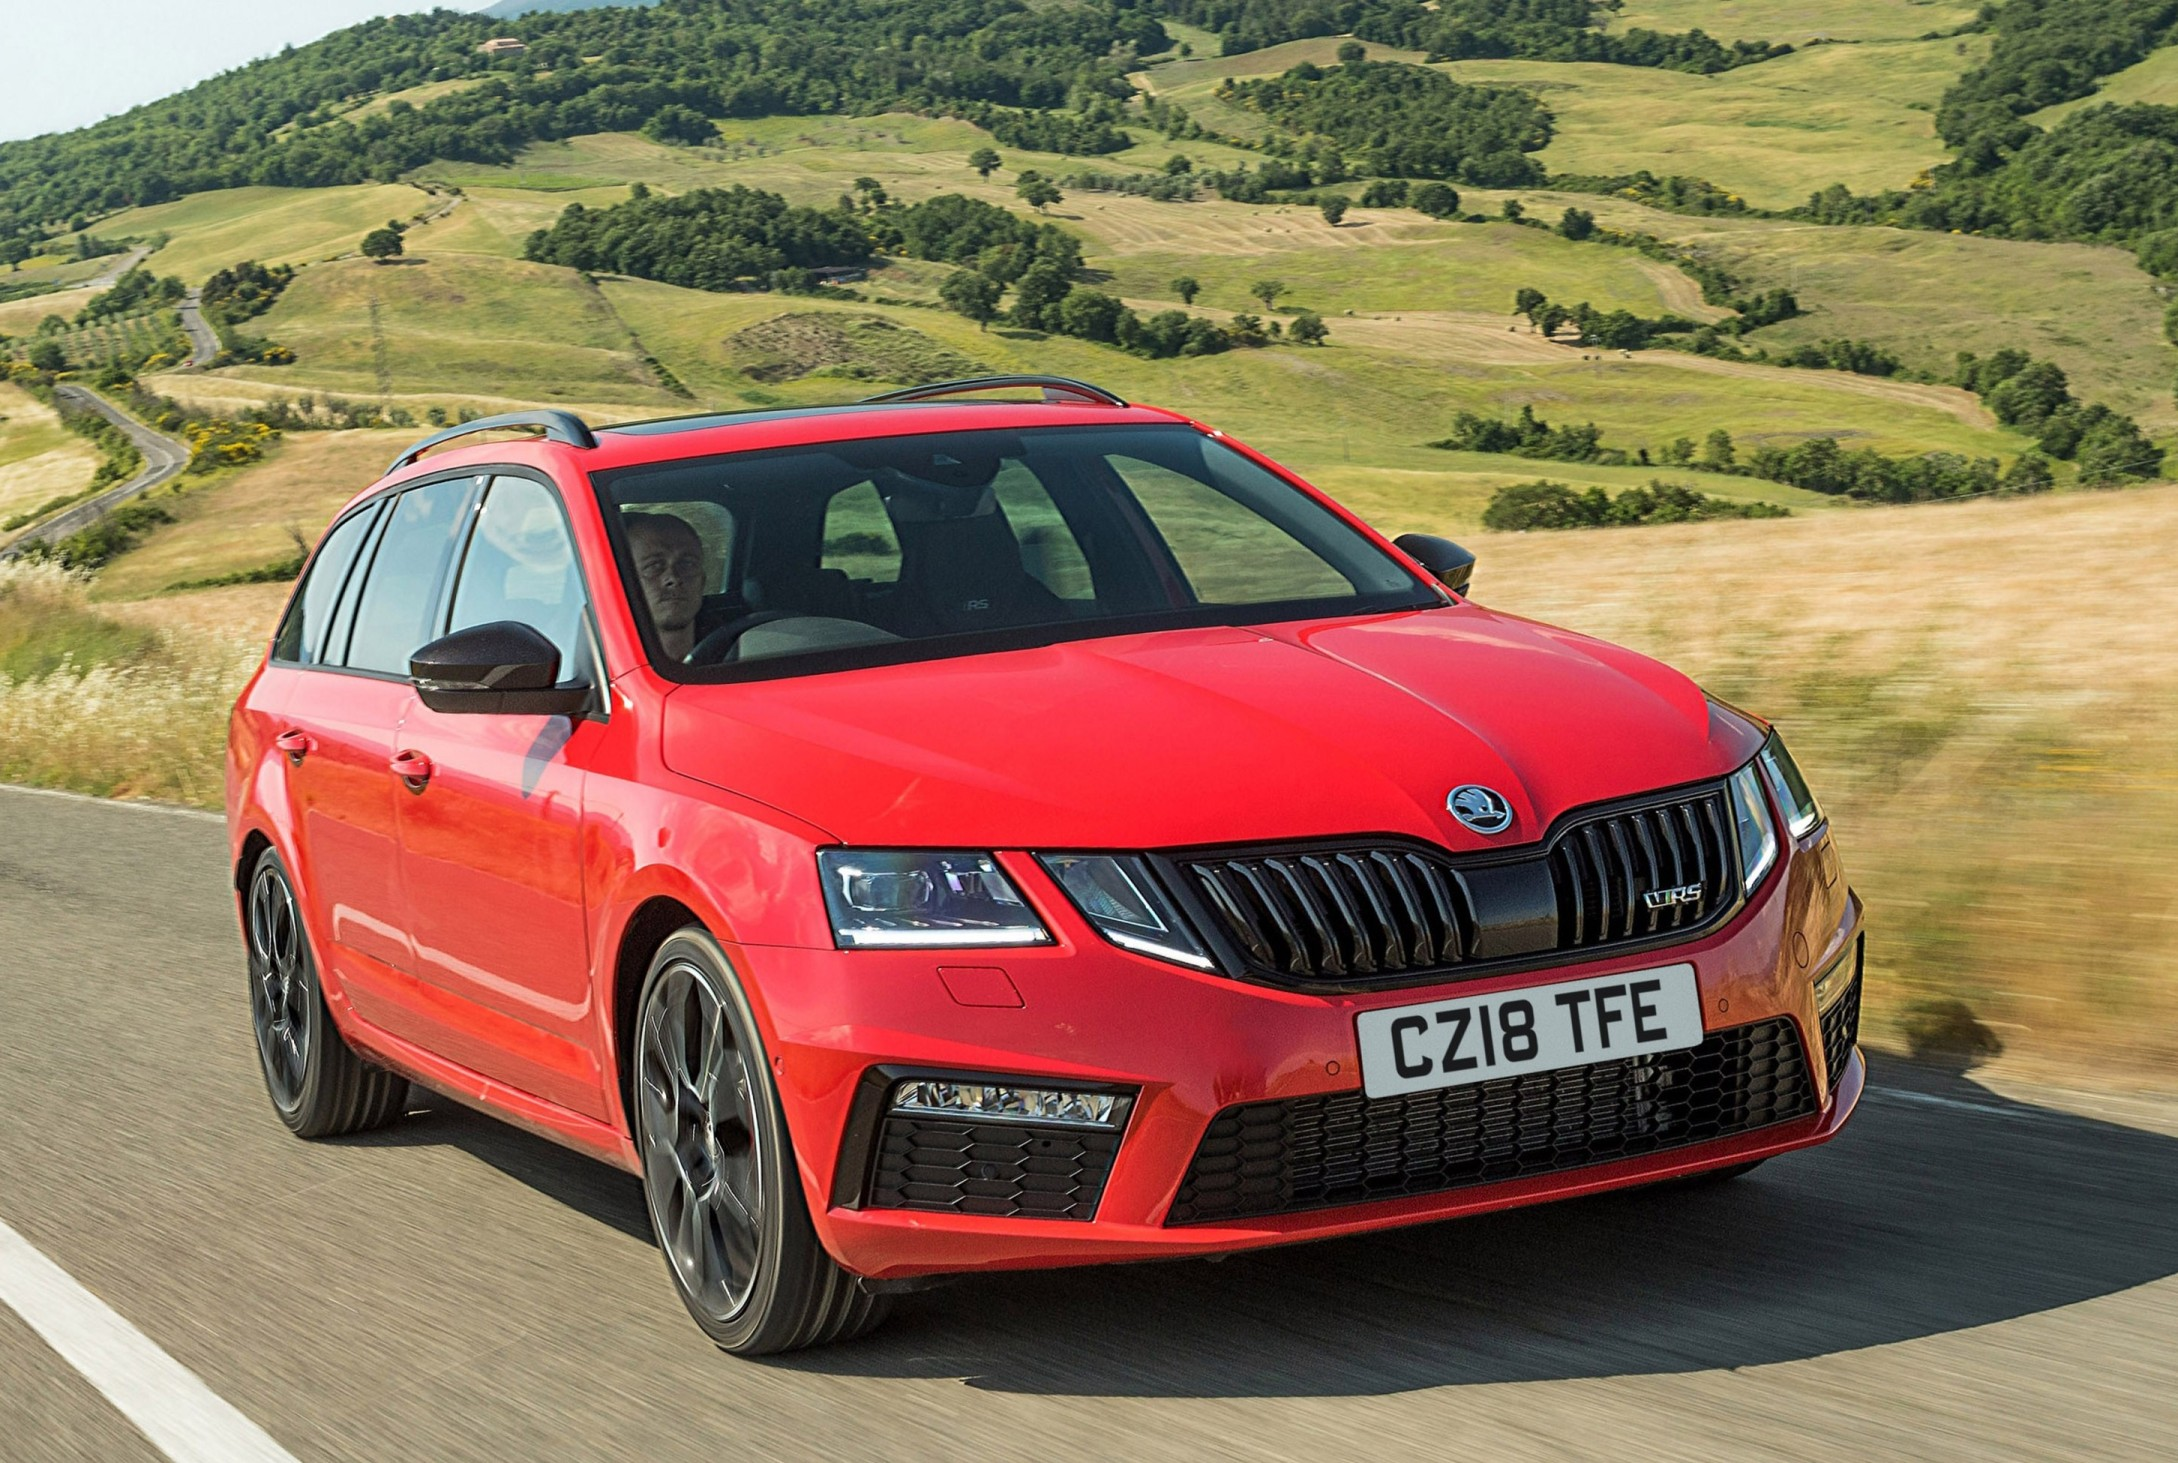 Skoda Octavia Vrs Estate Skoda Octavia Vrs Estate Road Test Wheels Alive